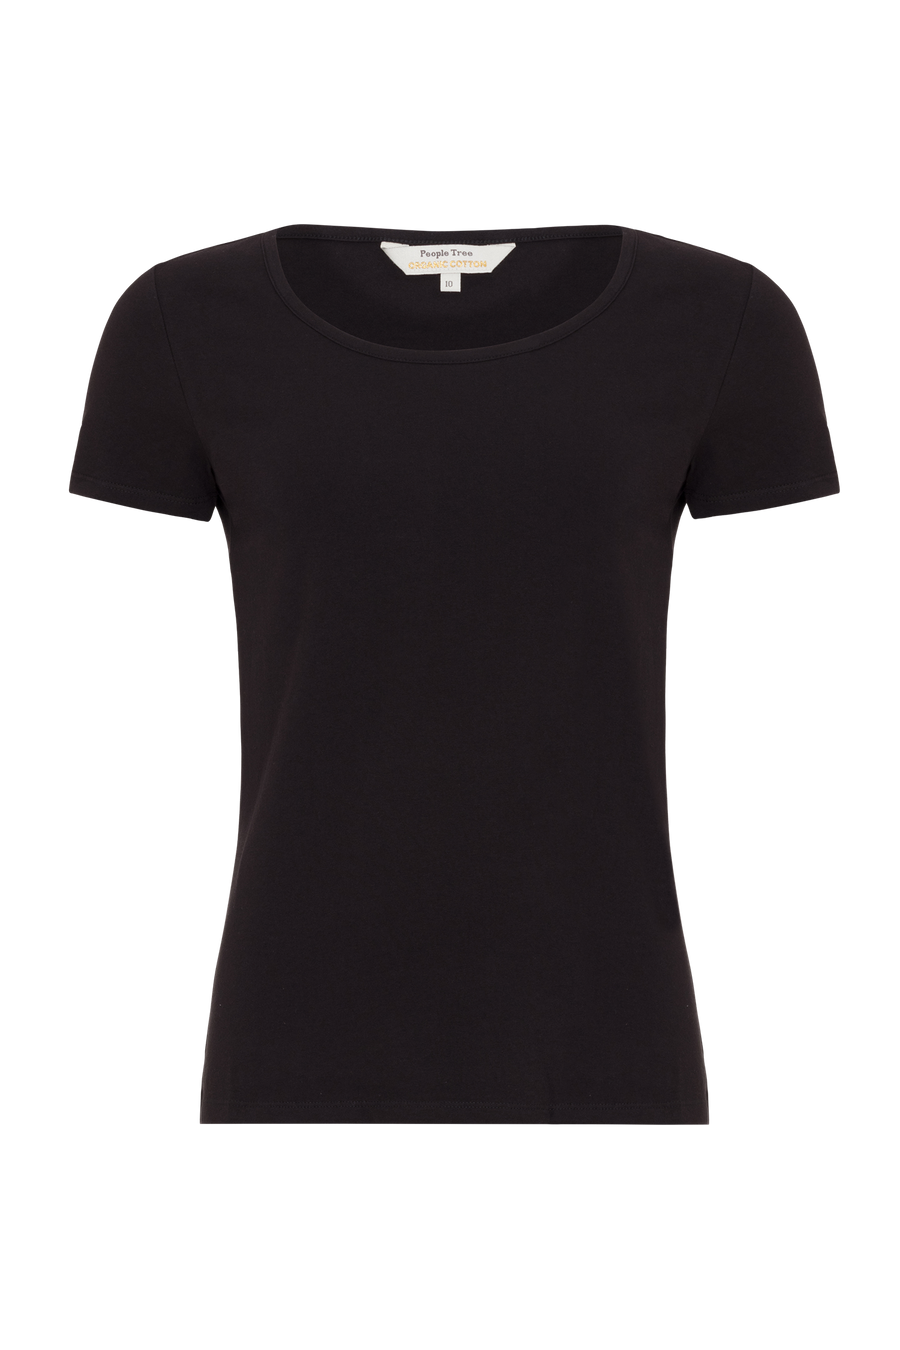 Gaia Tee in Black